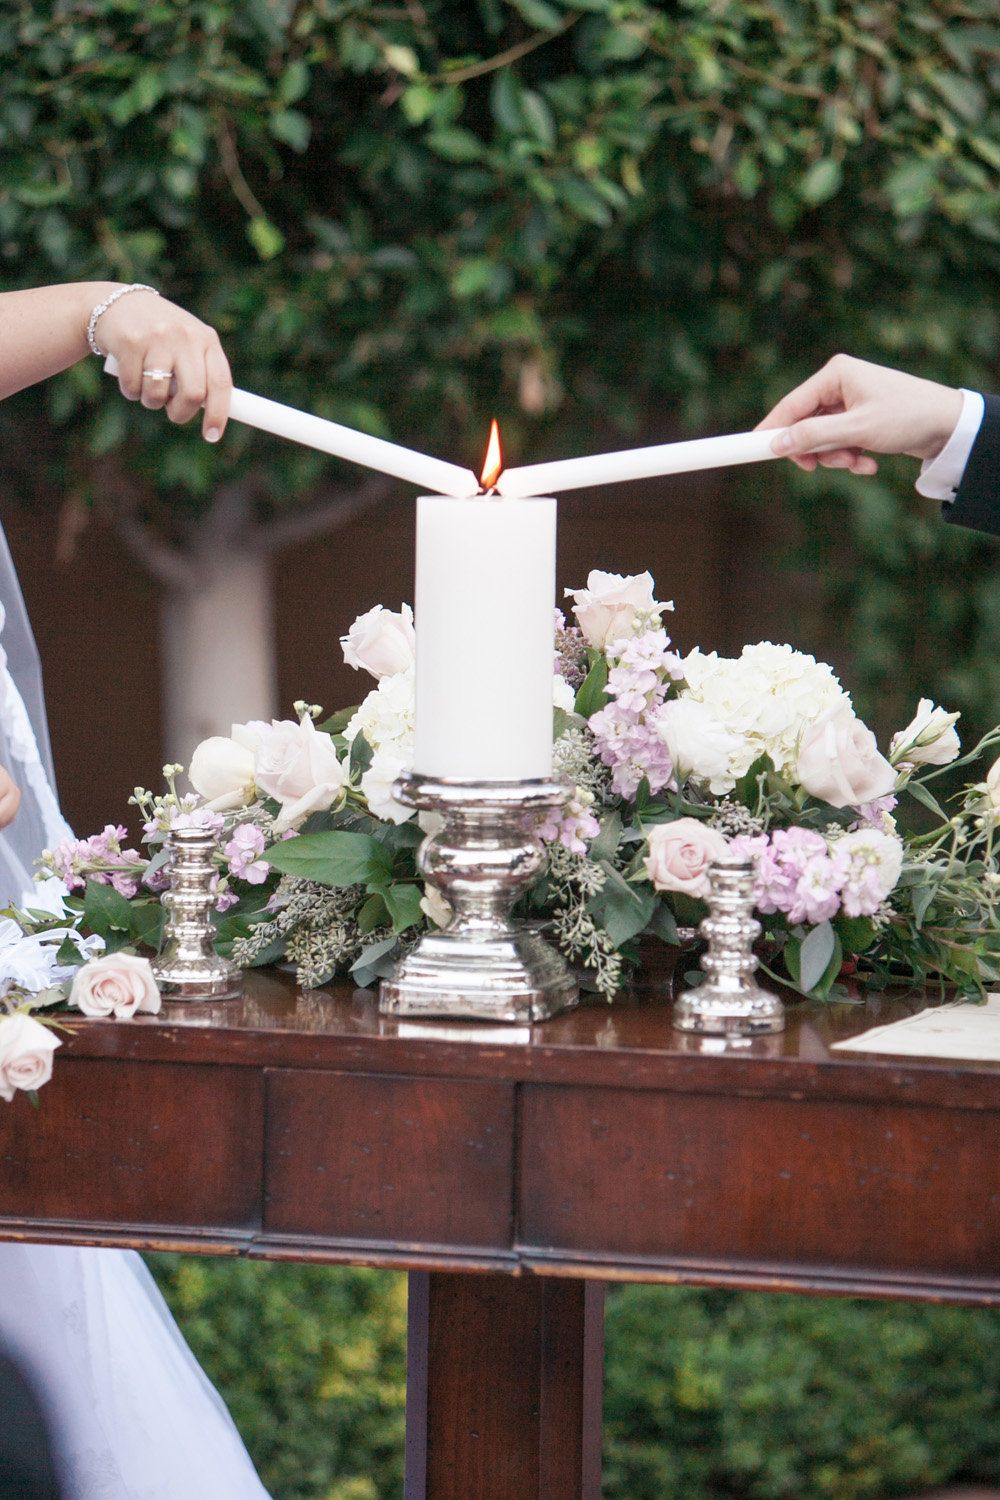 Bride Groom Light Unity Candle During Outdoor Ceremony Floral